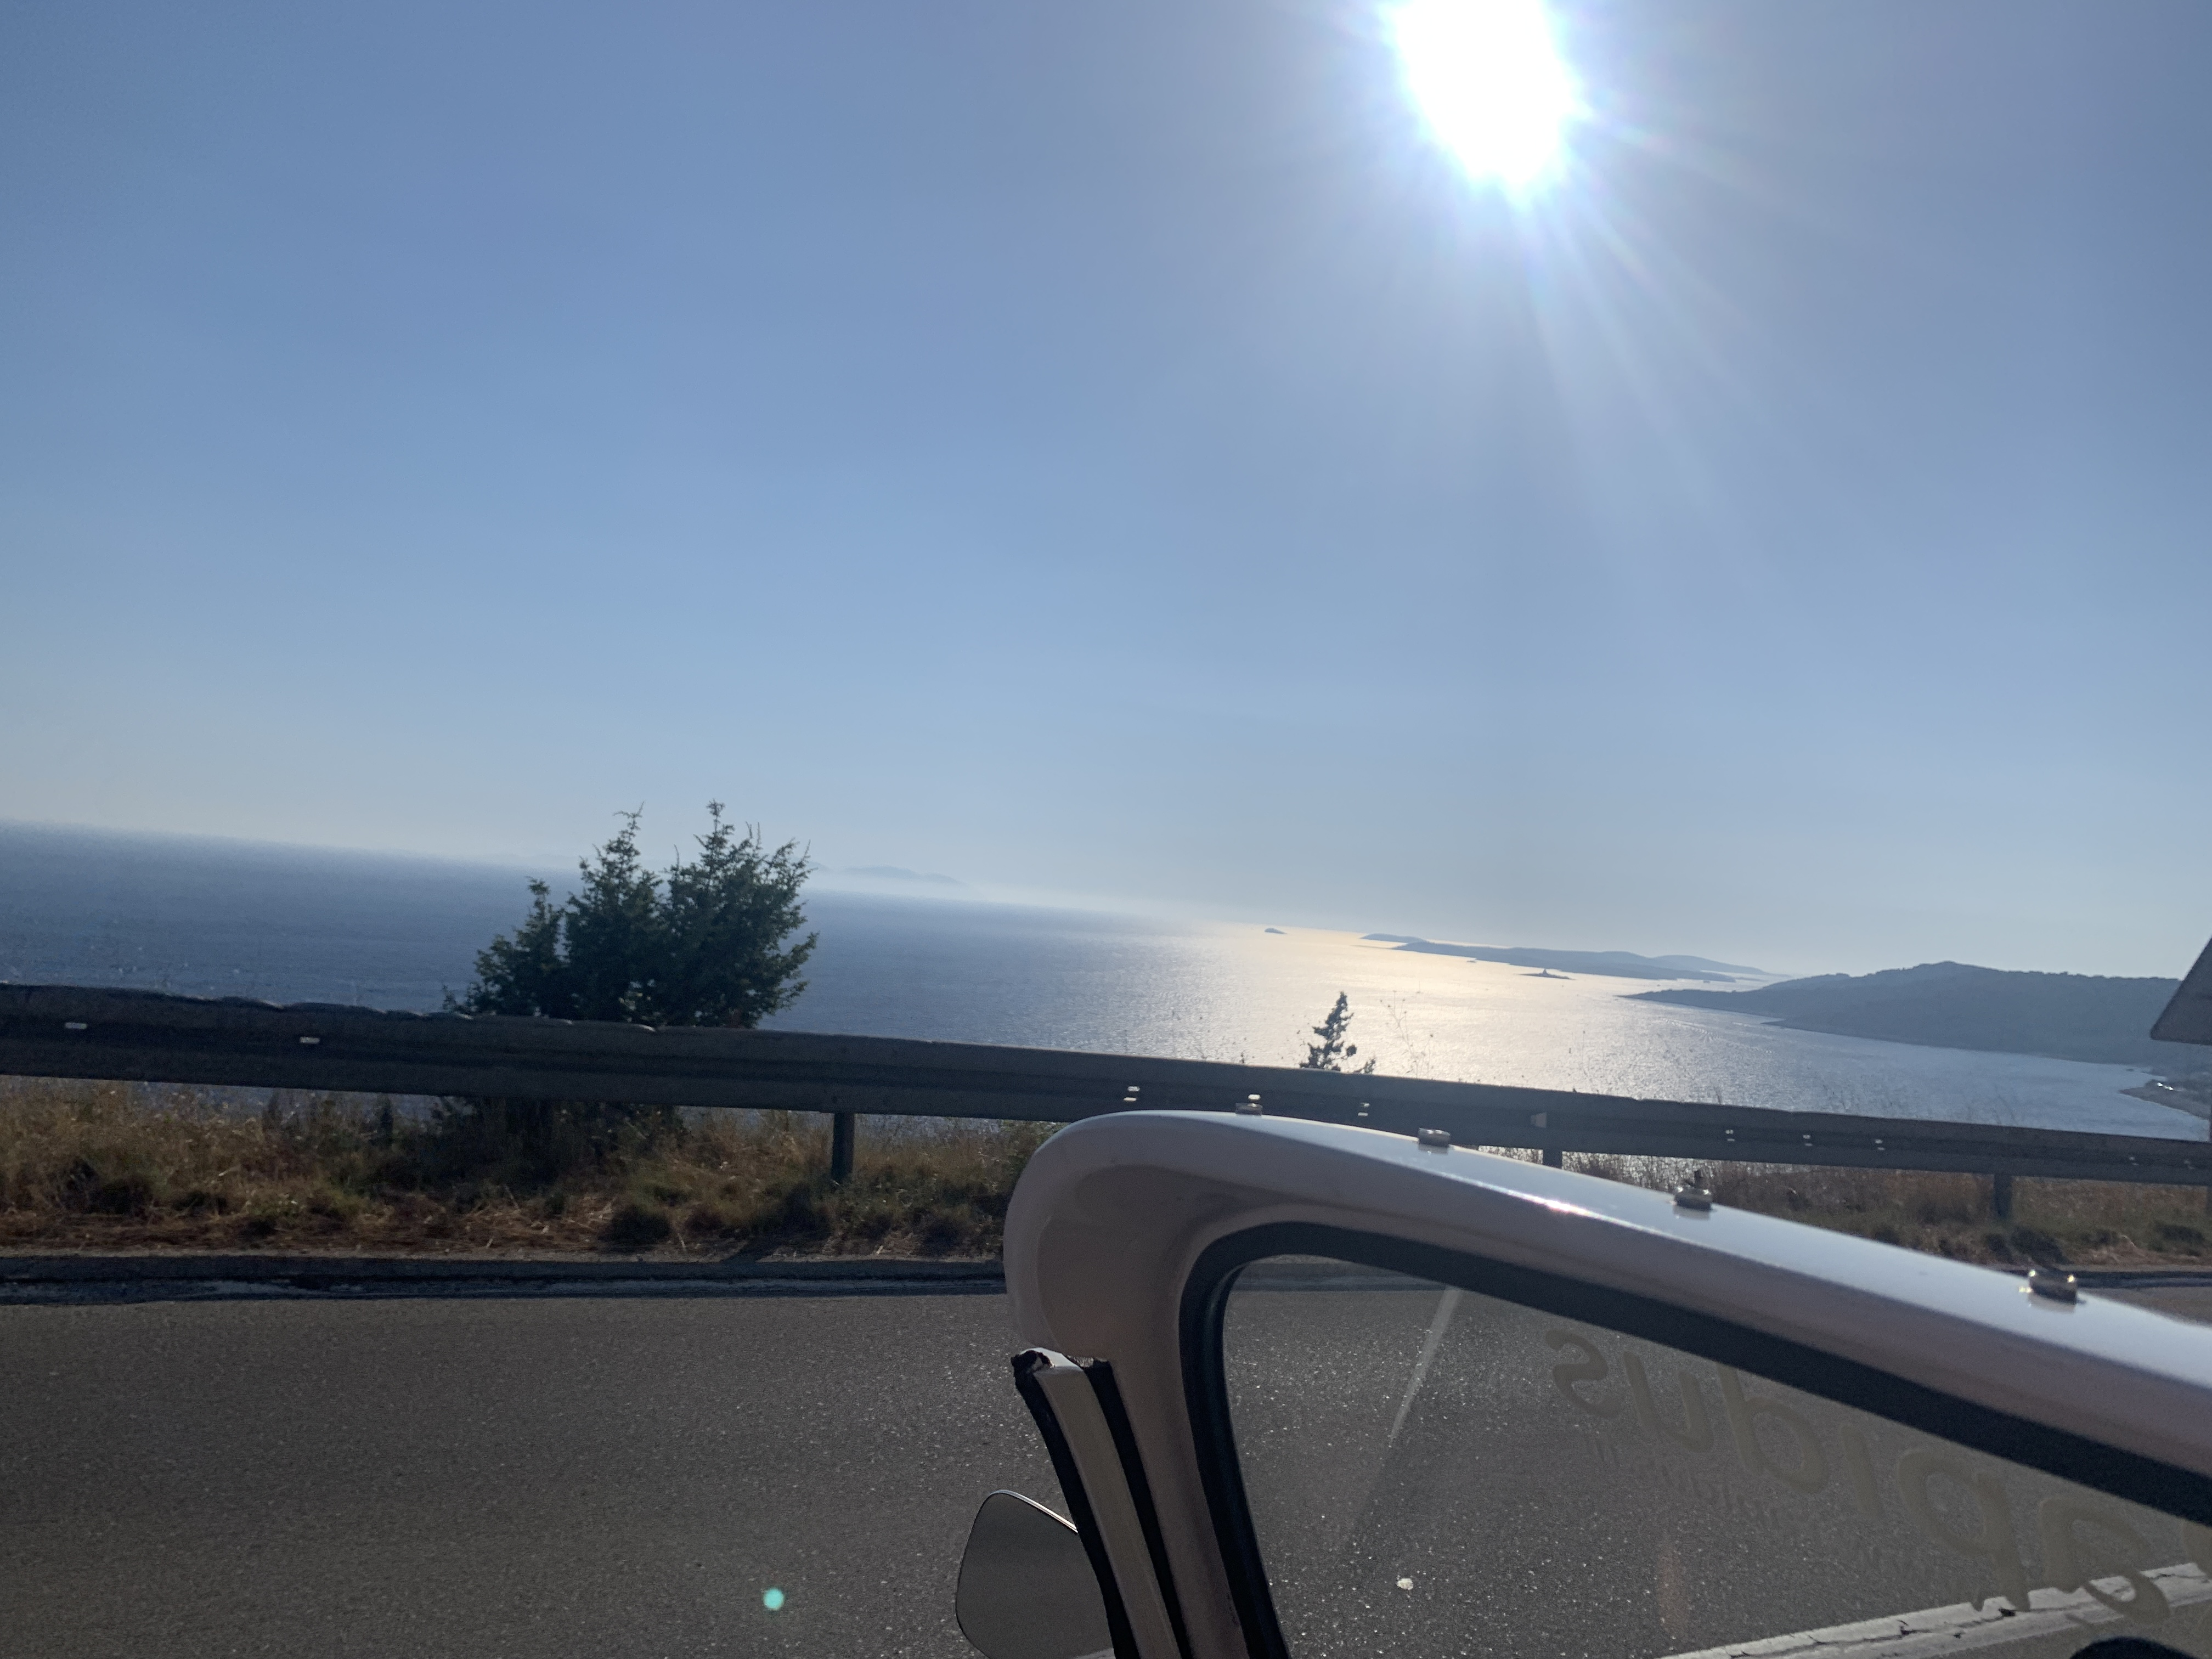 The sun glistening on the ocean, being seen from a car.